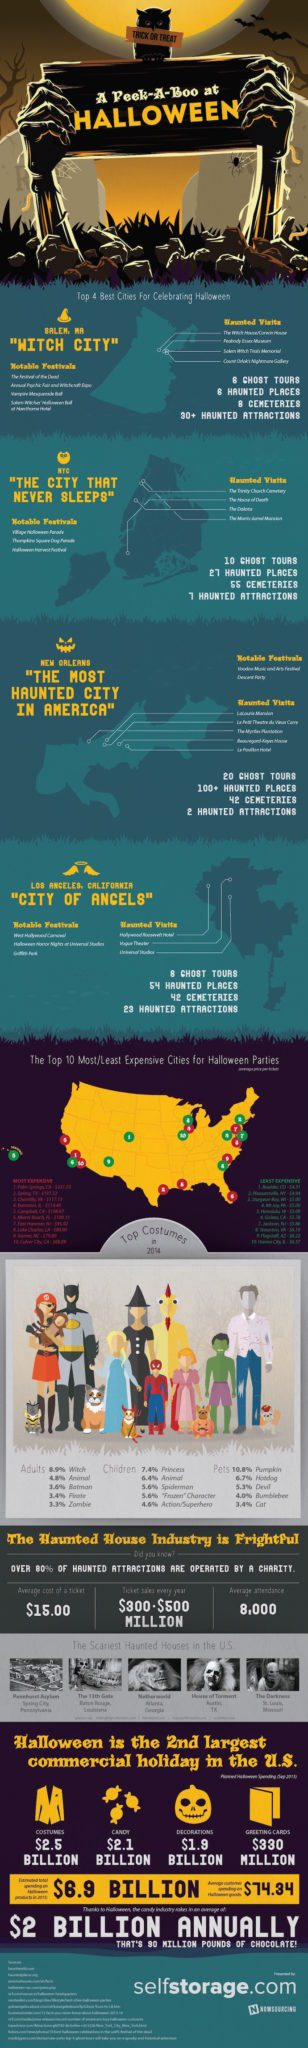 HalloweenCities